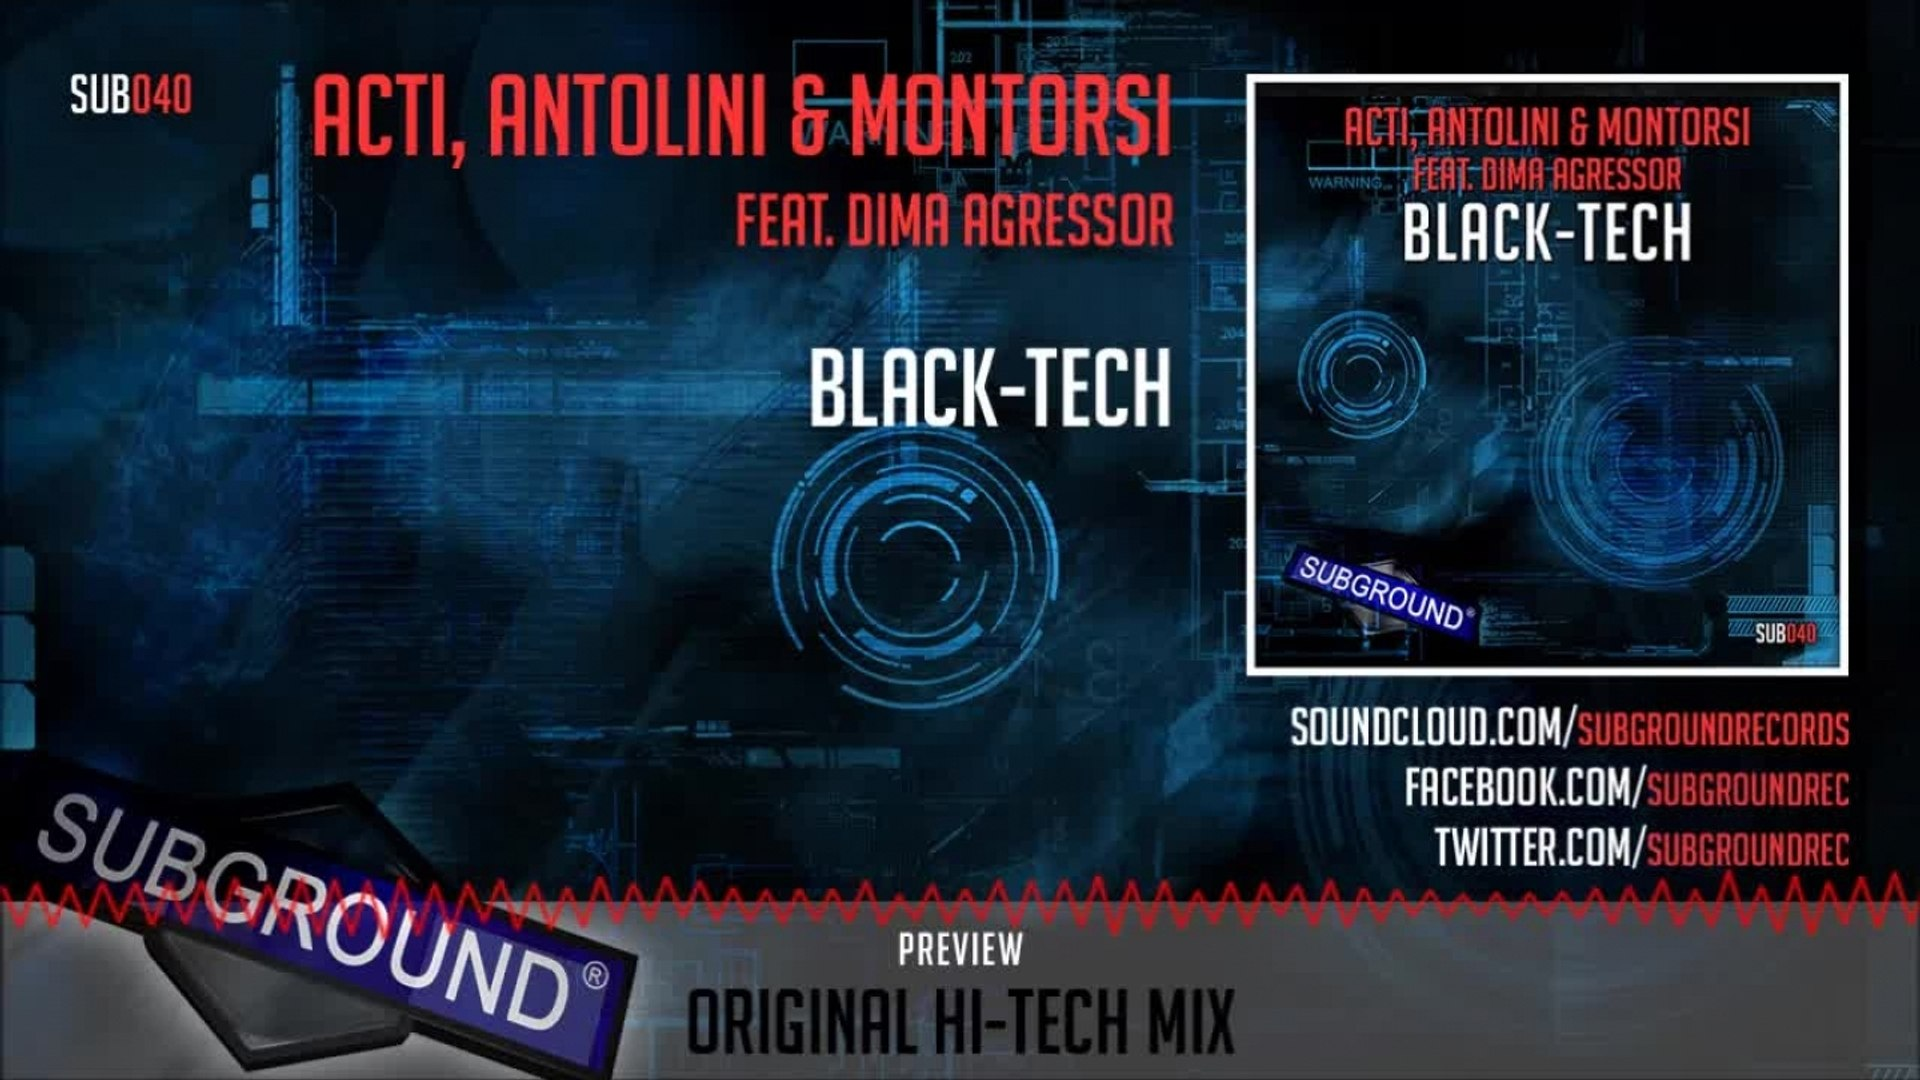 ACTI, Antolini, Montorsi ft. Dima Agressor - Black-Tech - Original Hi-Tech Mix (SUB040)